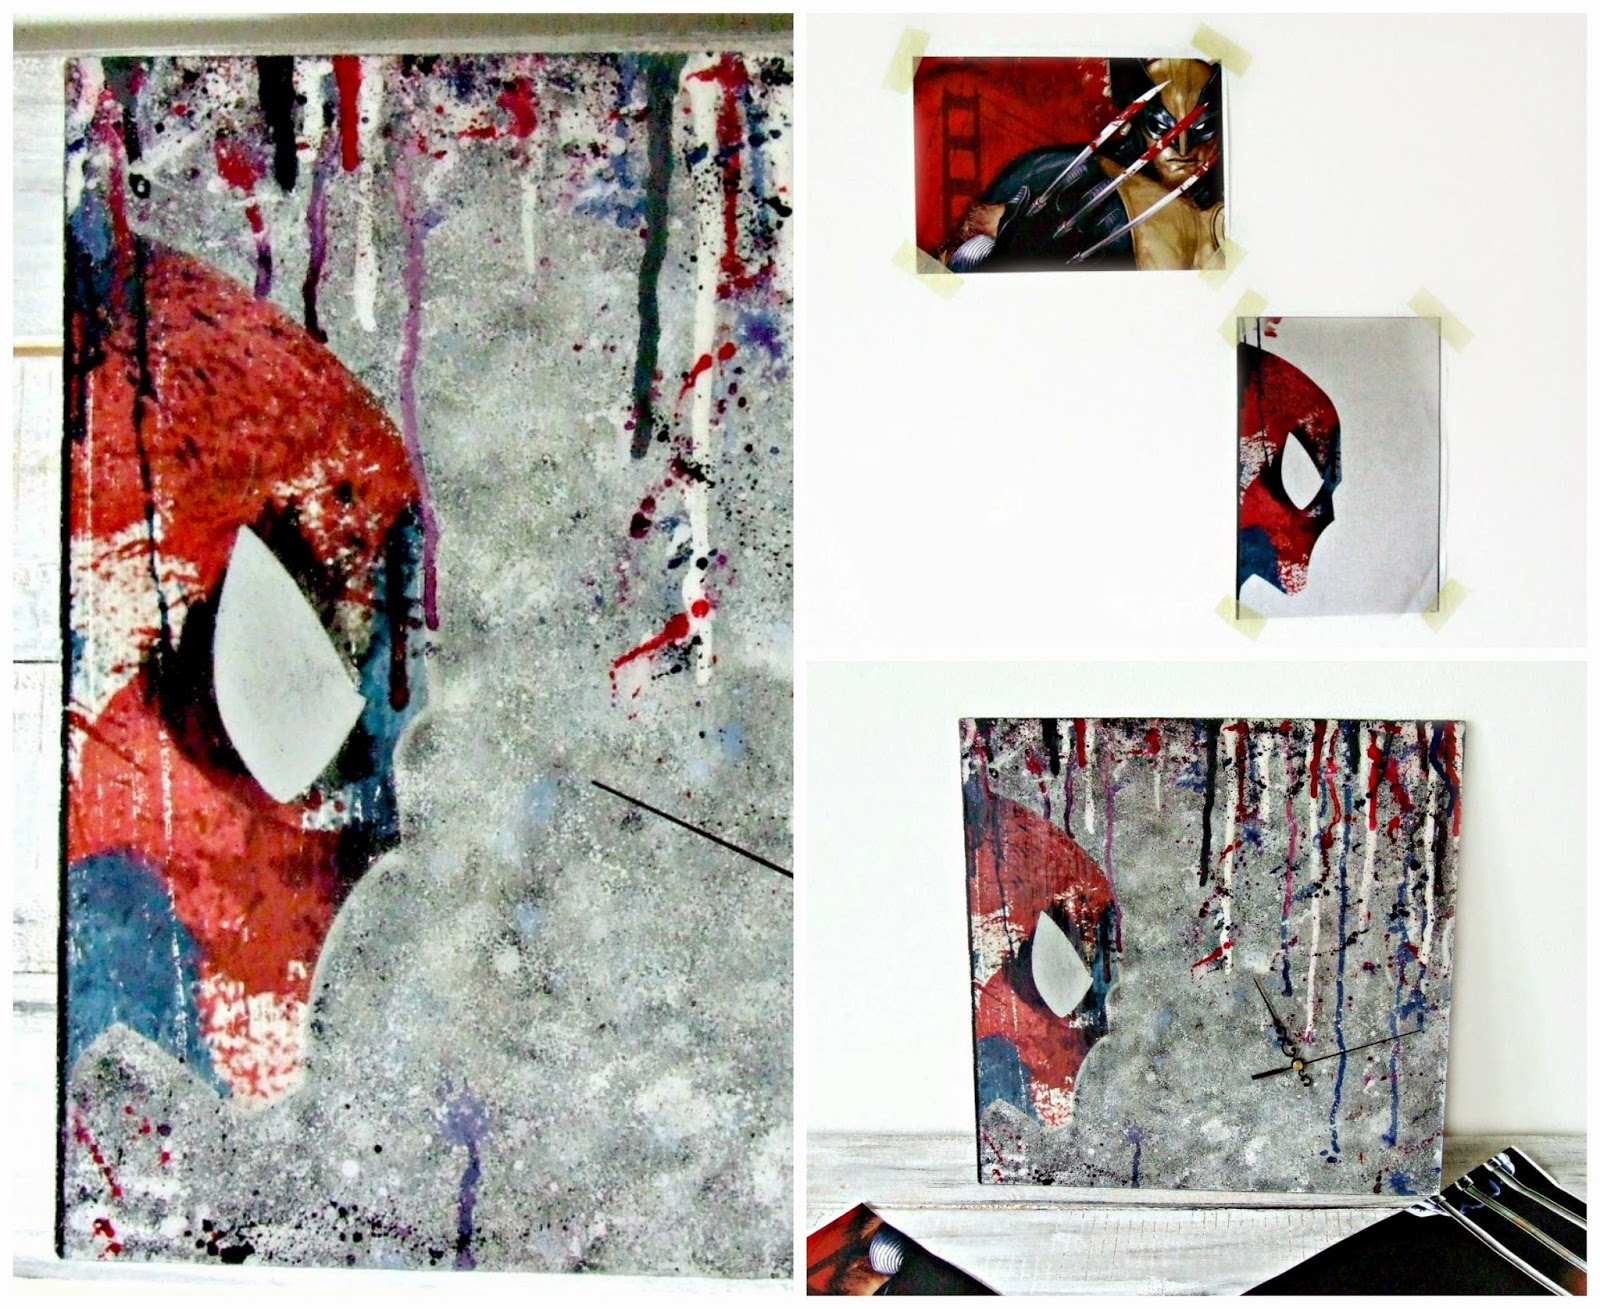 Zegar hand made decoupage z motywem Spidermana. Eco Manufaktura